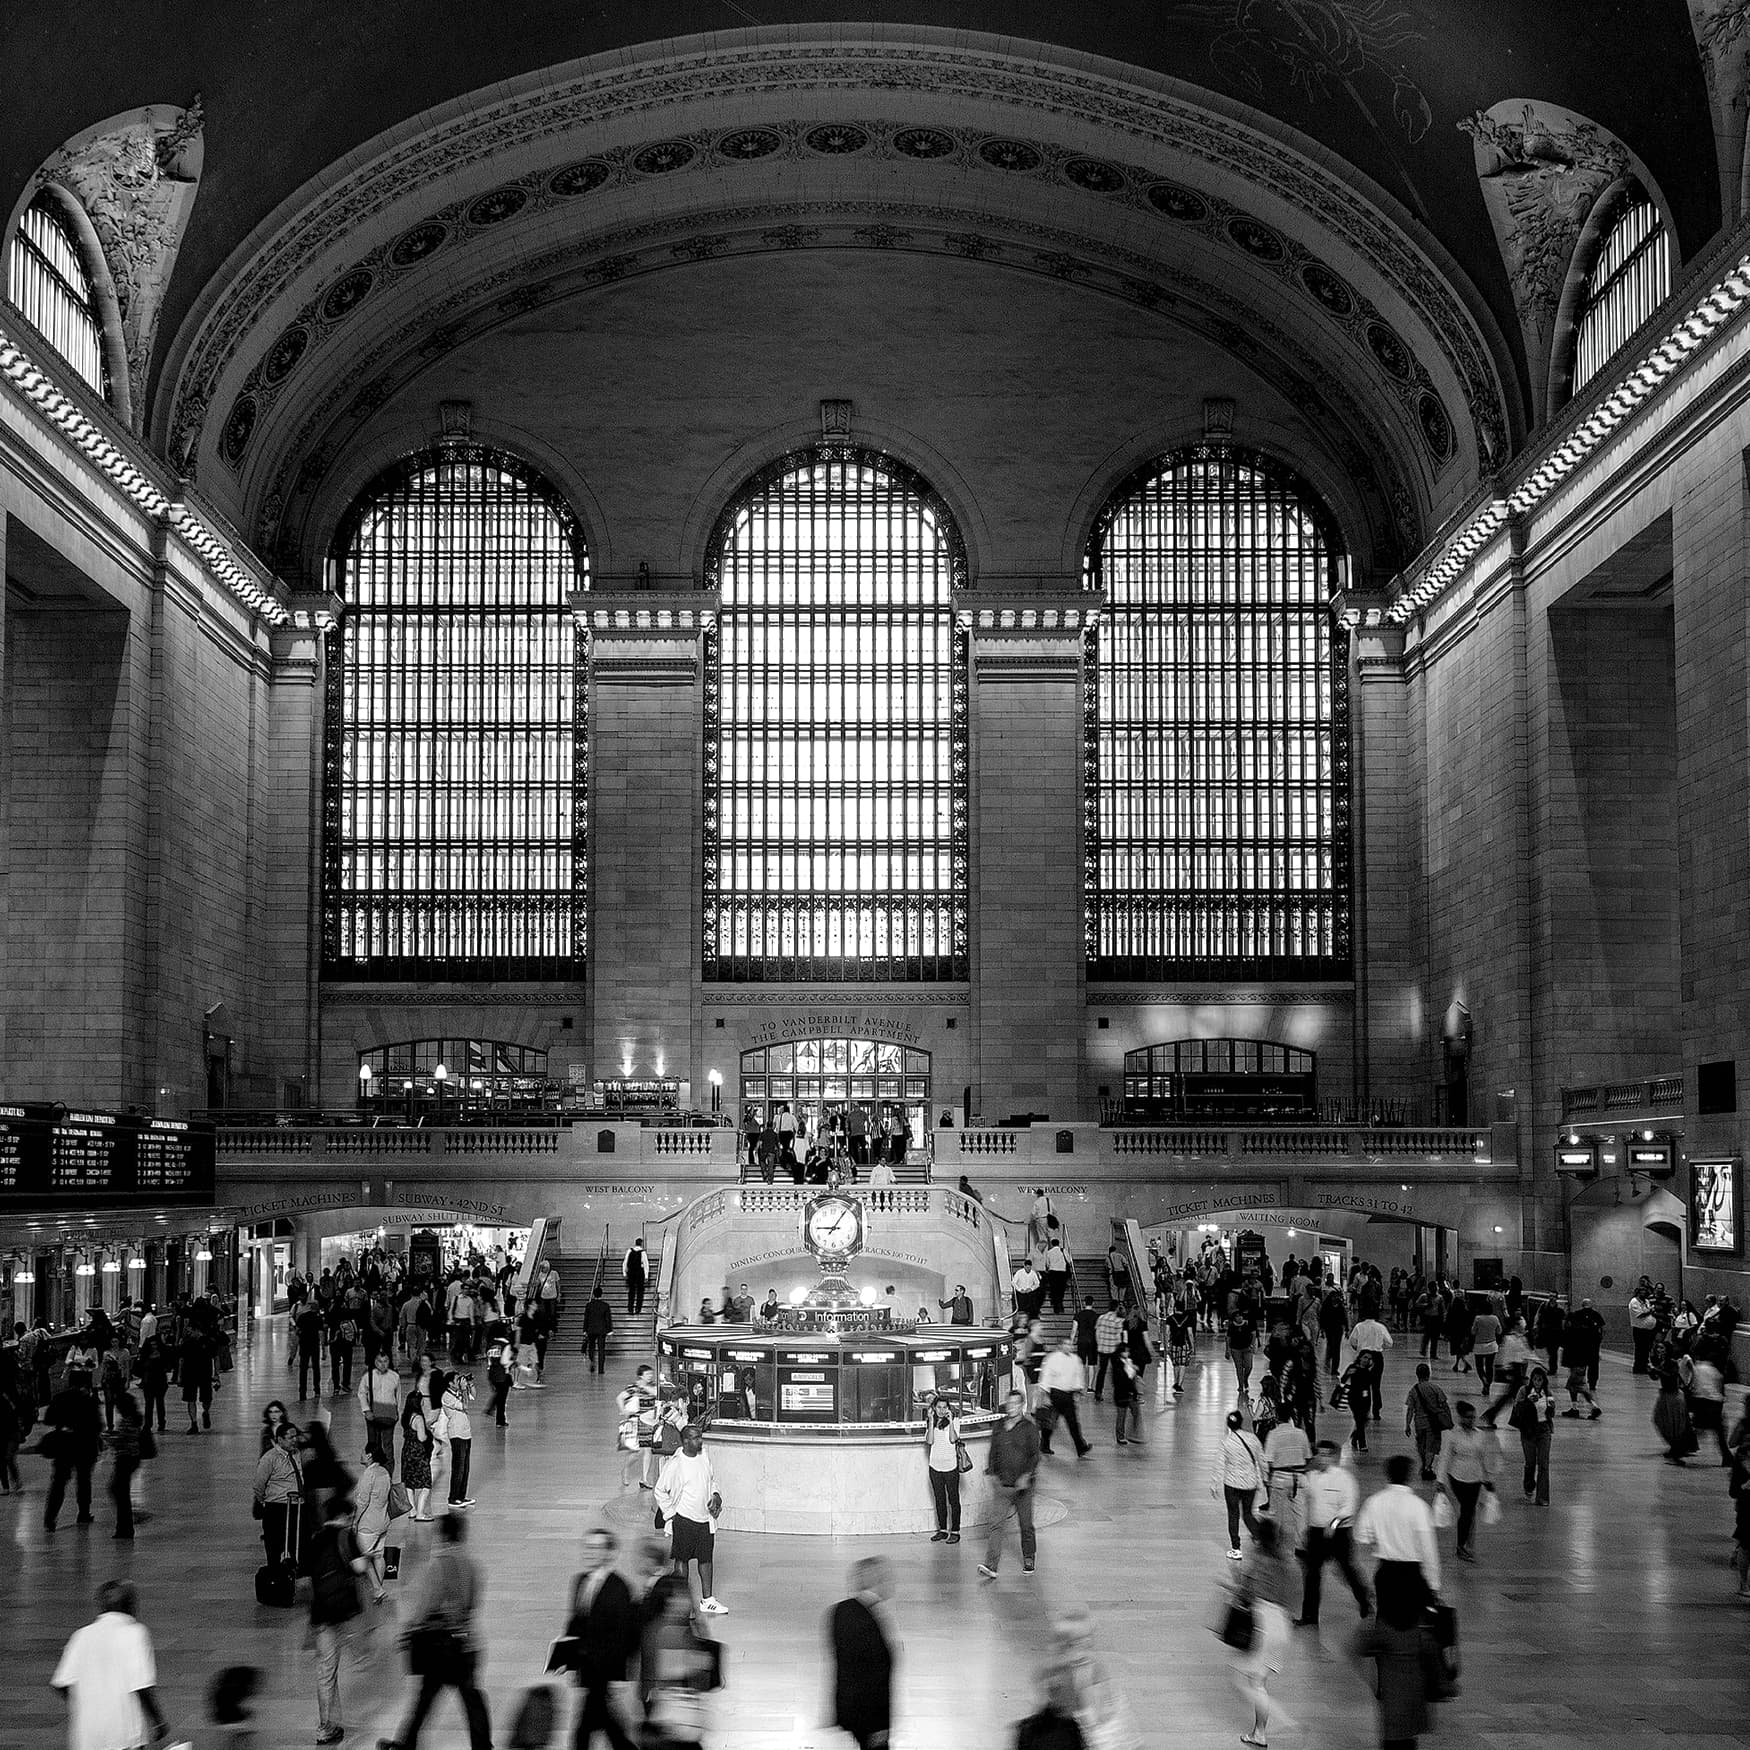 Black and white image of interior of Grand Central Terminal.